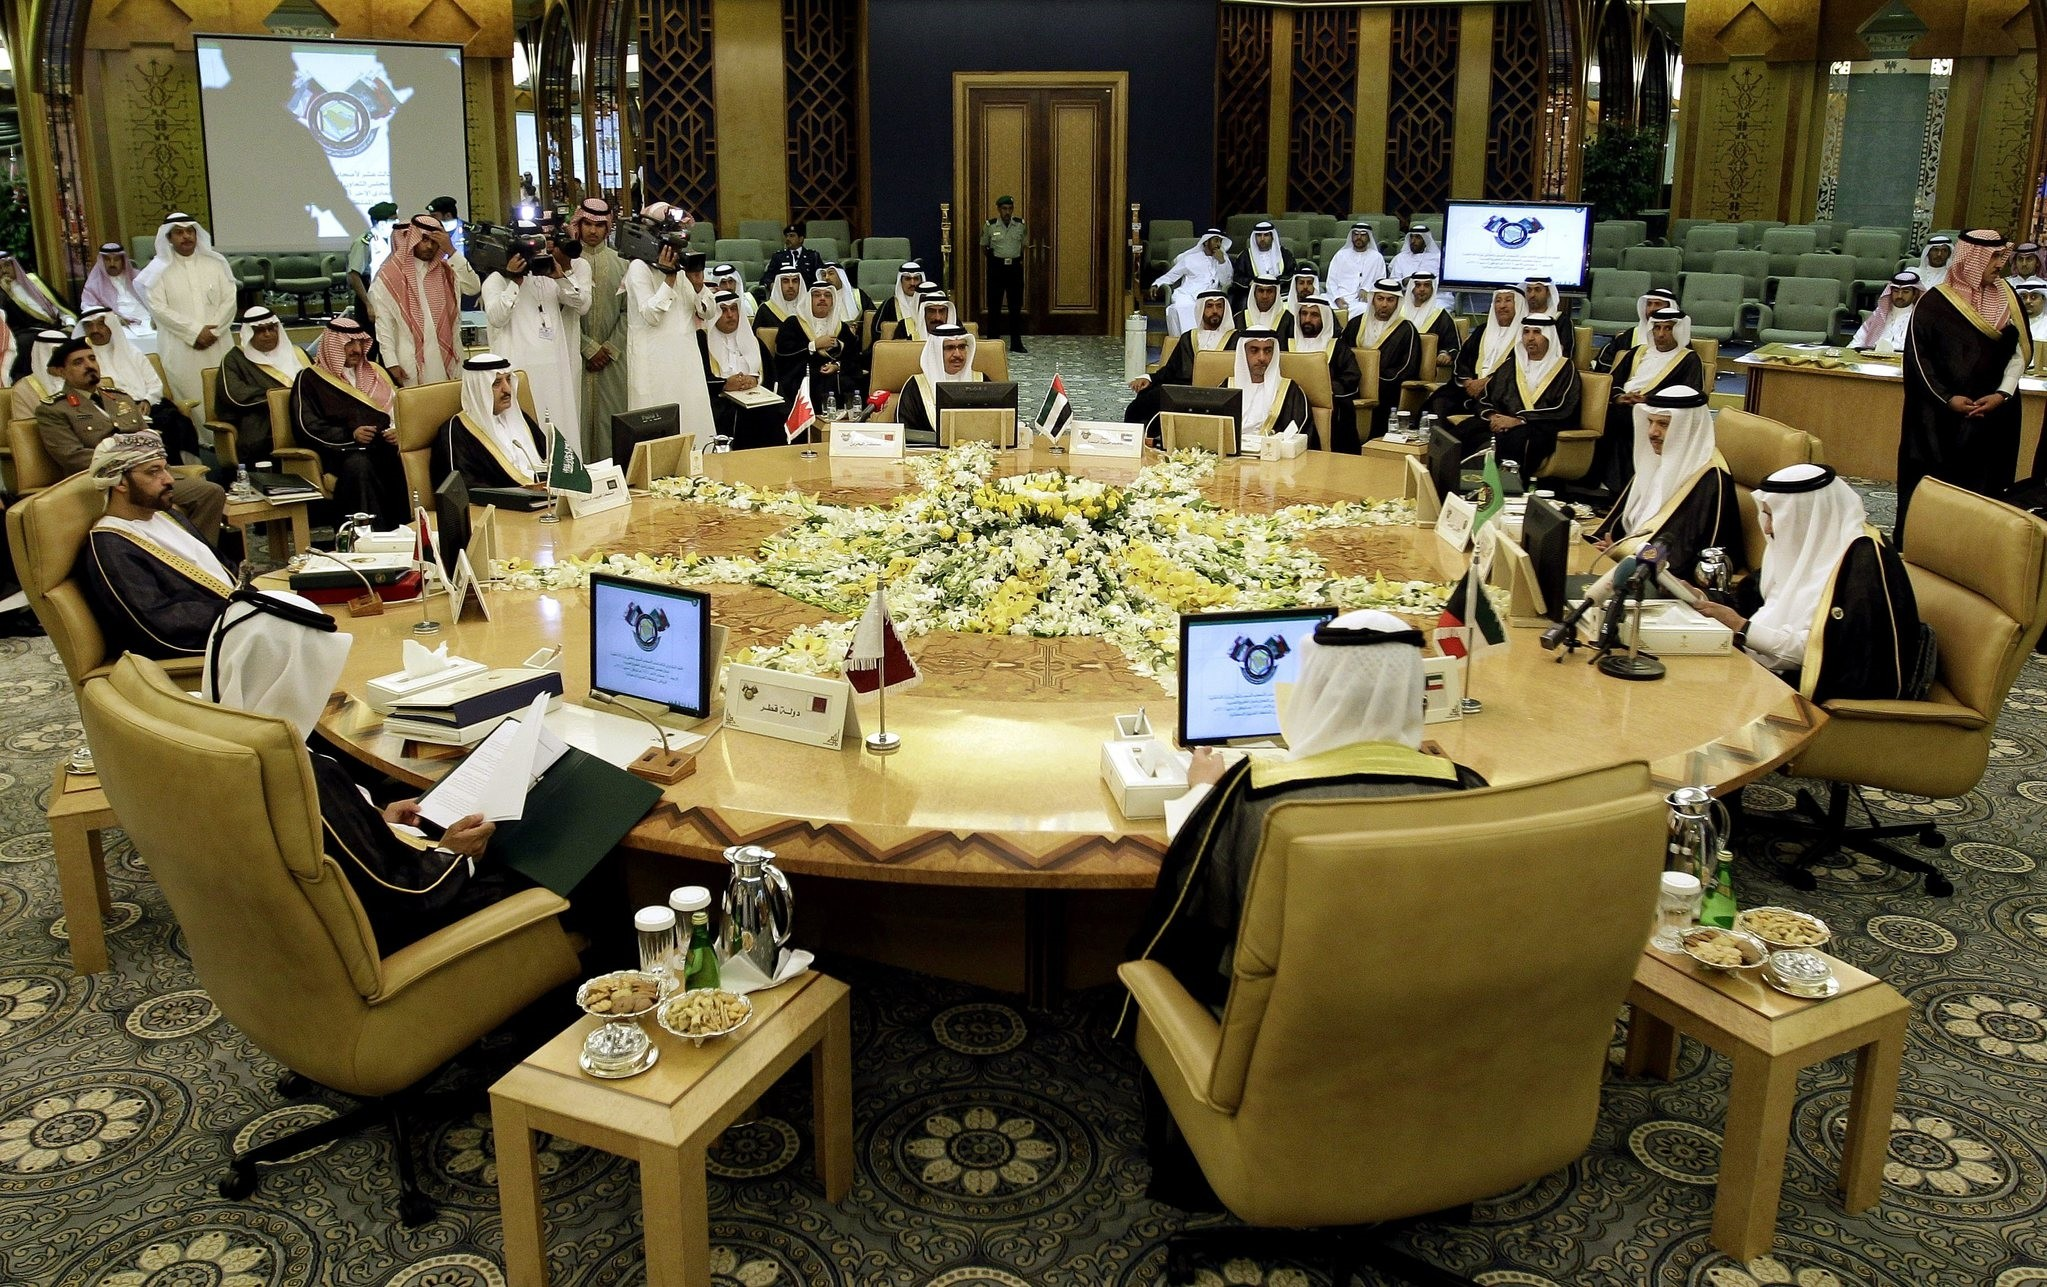 The interior ministers of the Gulf Cooperation Council (GCC) are seen during a meeting in Riyadh, Saudi Arabia on may 2, 2012.